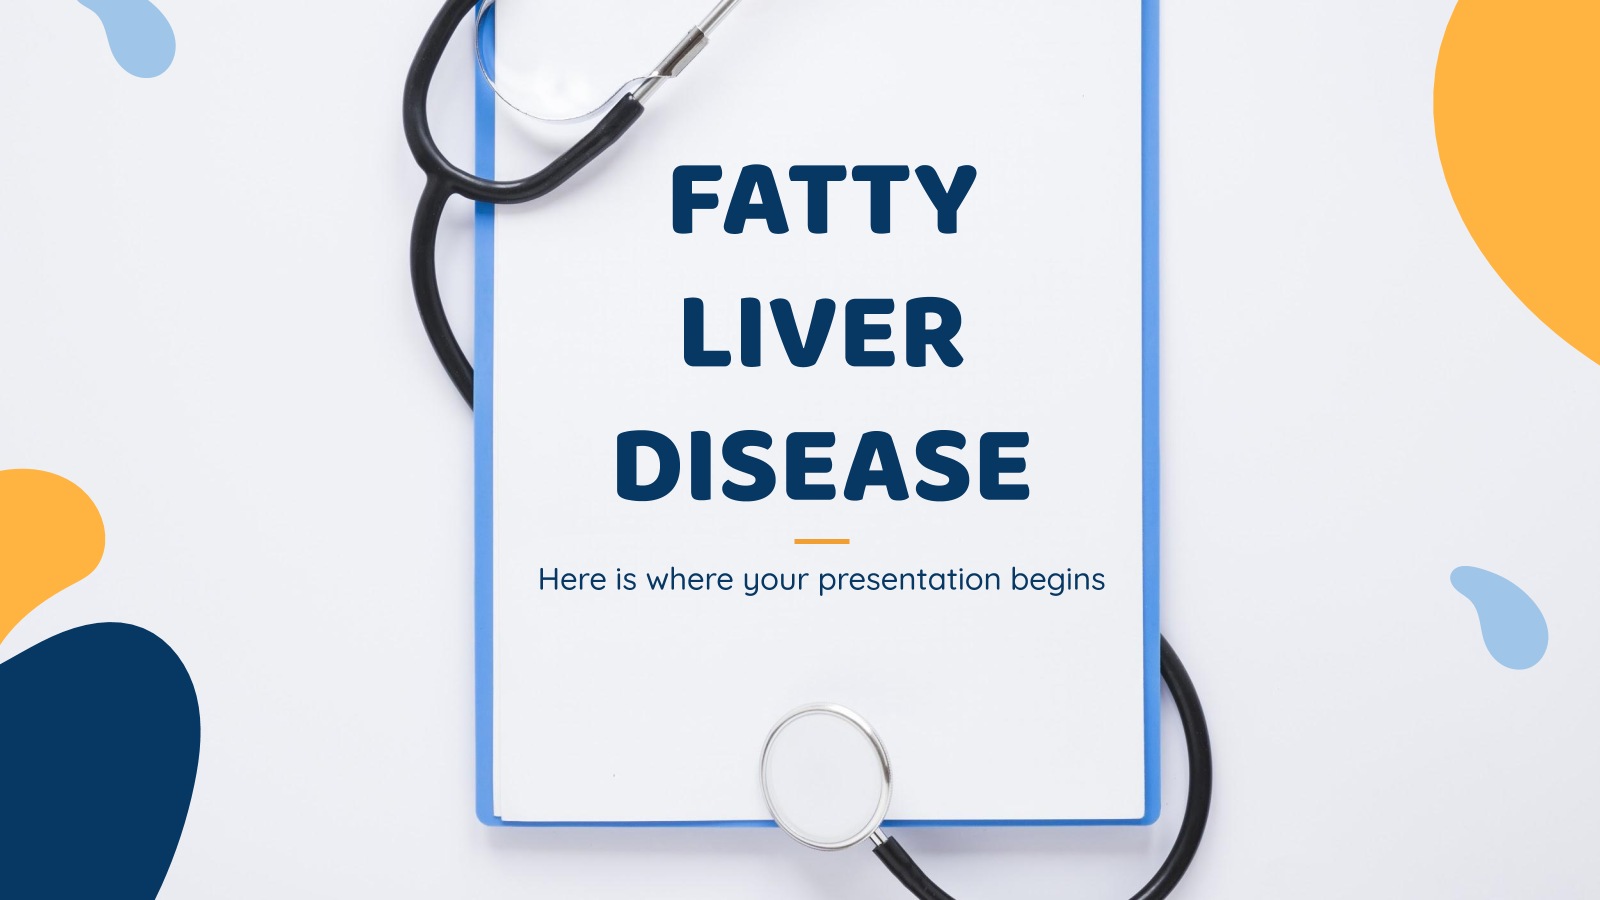 Fatty Liver Disease presentation template